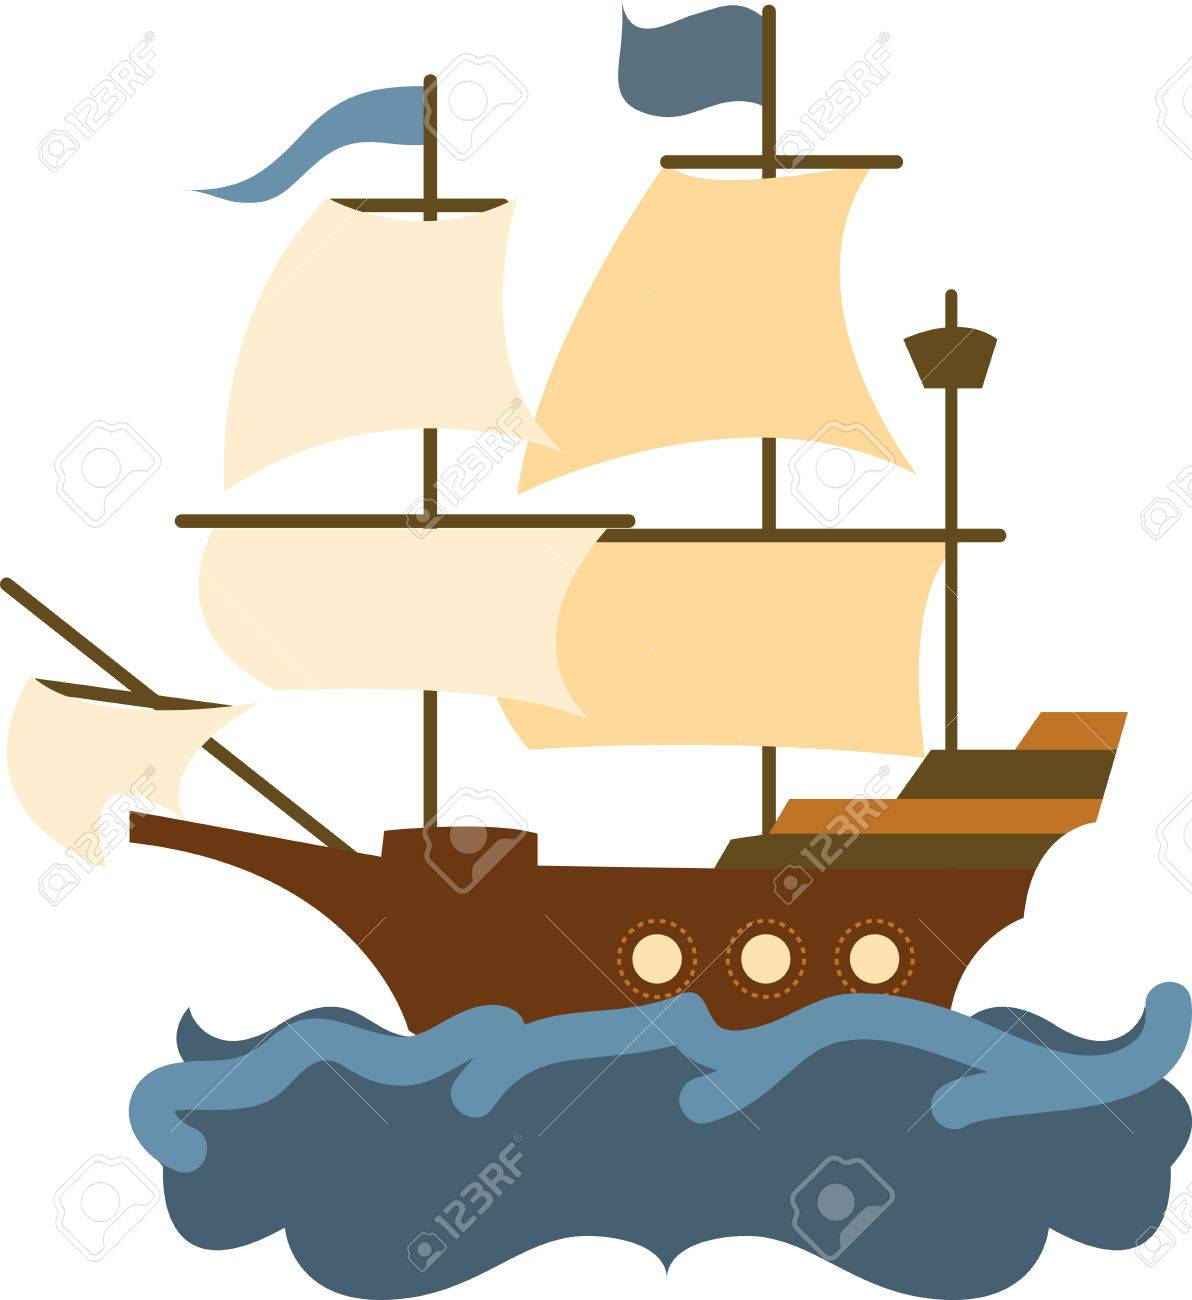 122 mayflower cliparts stock vector and royalty free mayflower rh 123rf com mayflower clipart free mayflower compact clipart